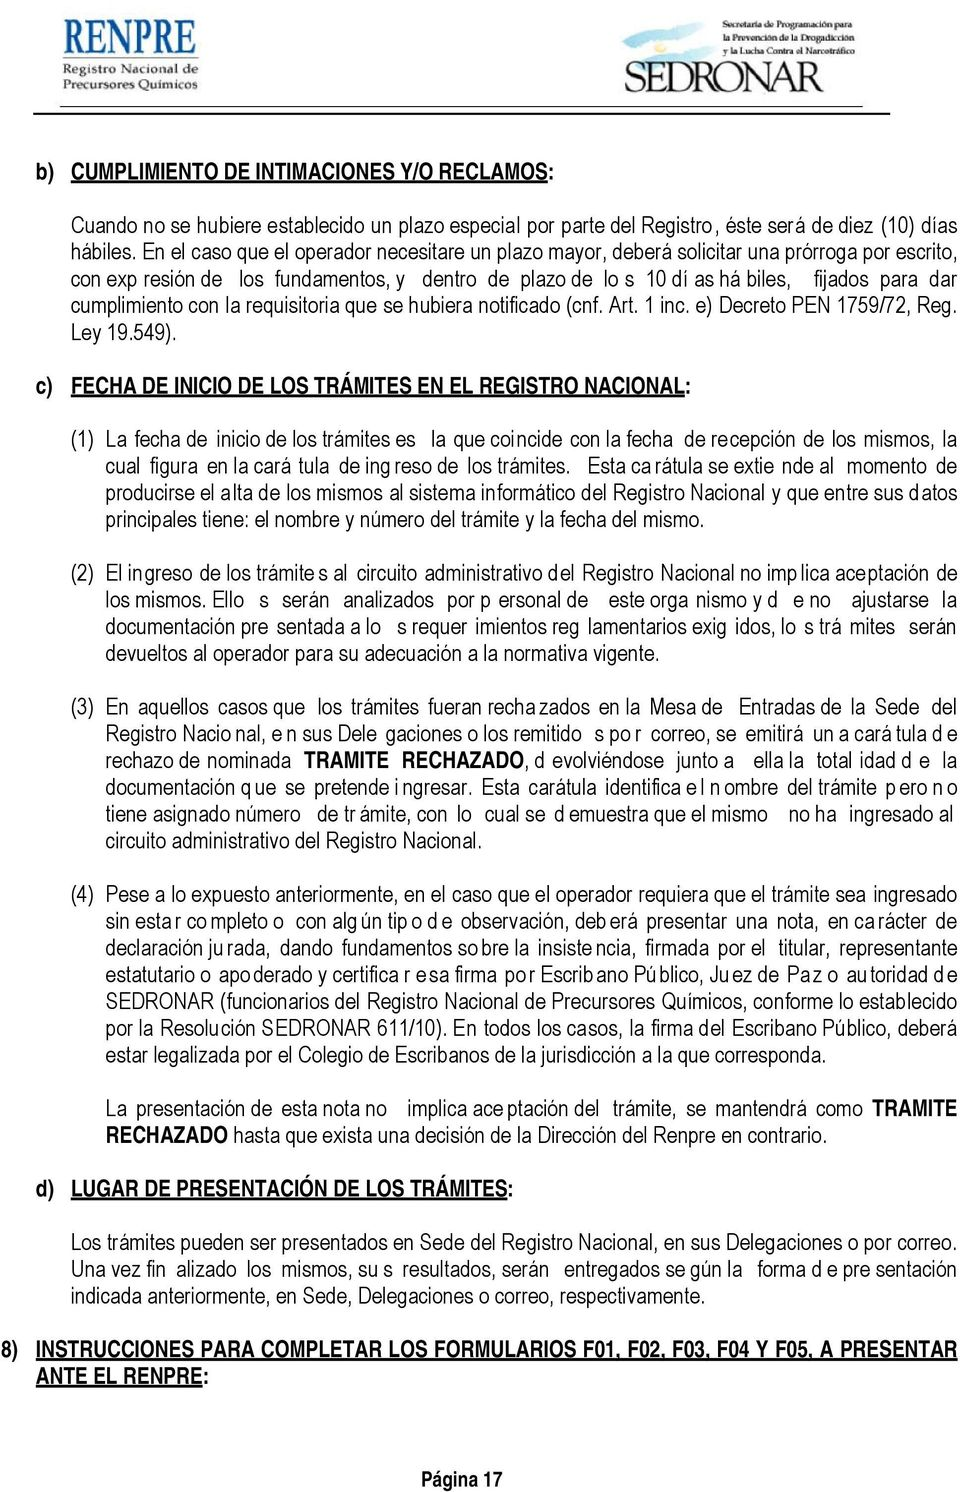 cumplimiento con la requisitoria que se hubiera notificado (cnf. Art. 1 inc. e) Decreto PEN 1759/72, Reg. Ley 19.549).